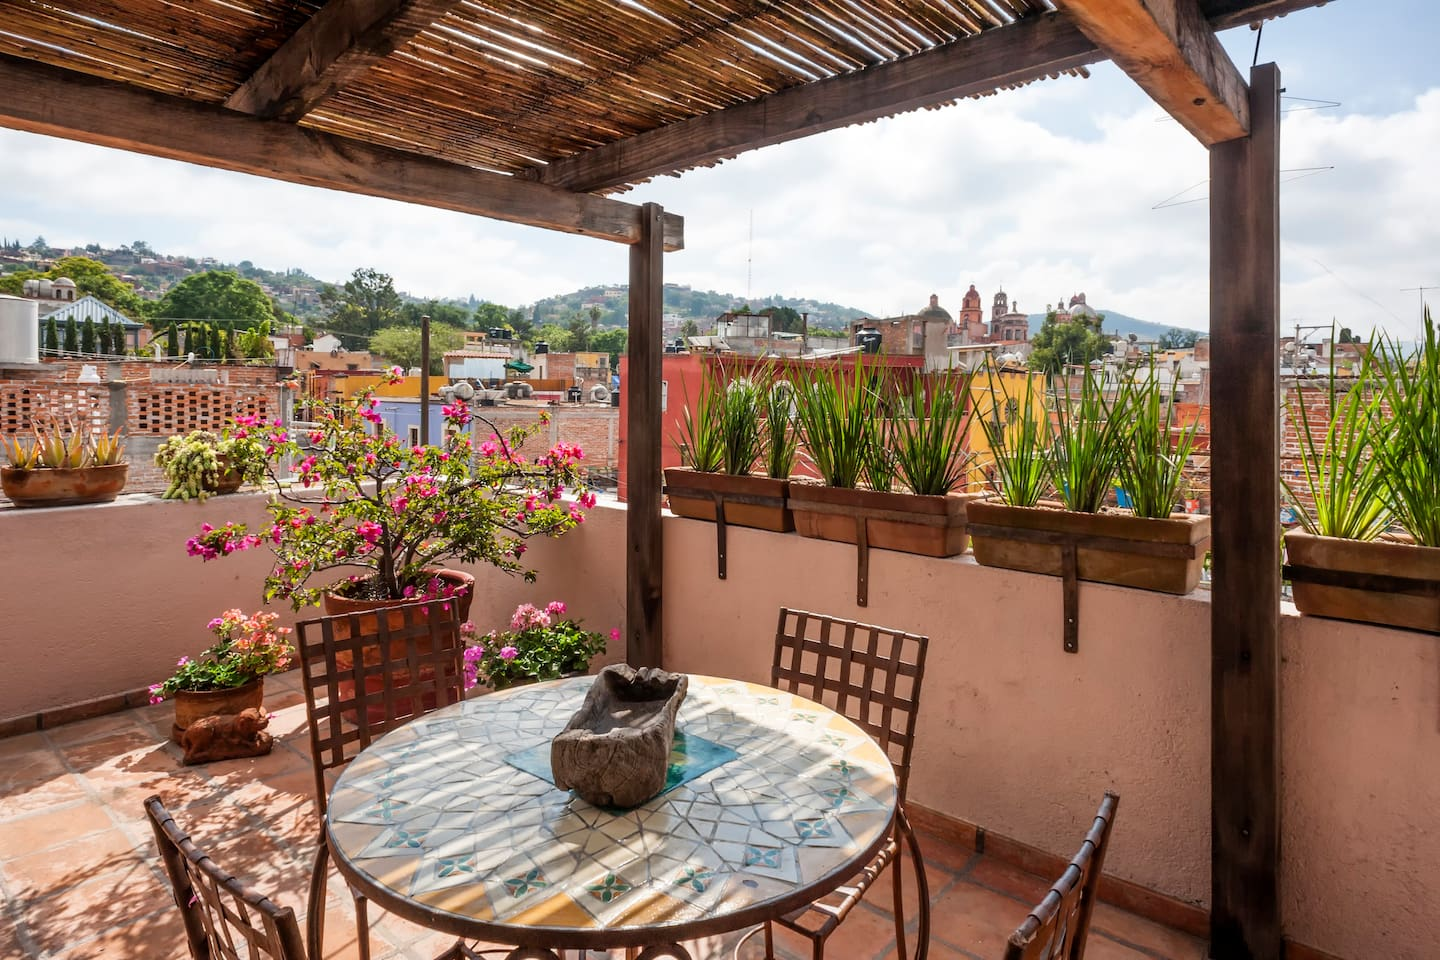 Roof top patio with awesome views. The casita has direct access but is shared with the other casitas.